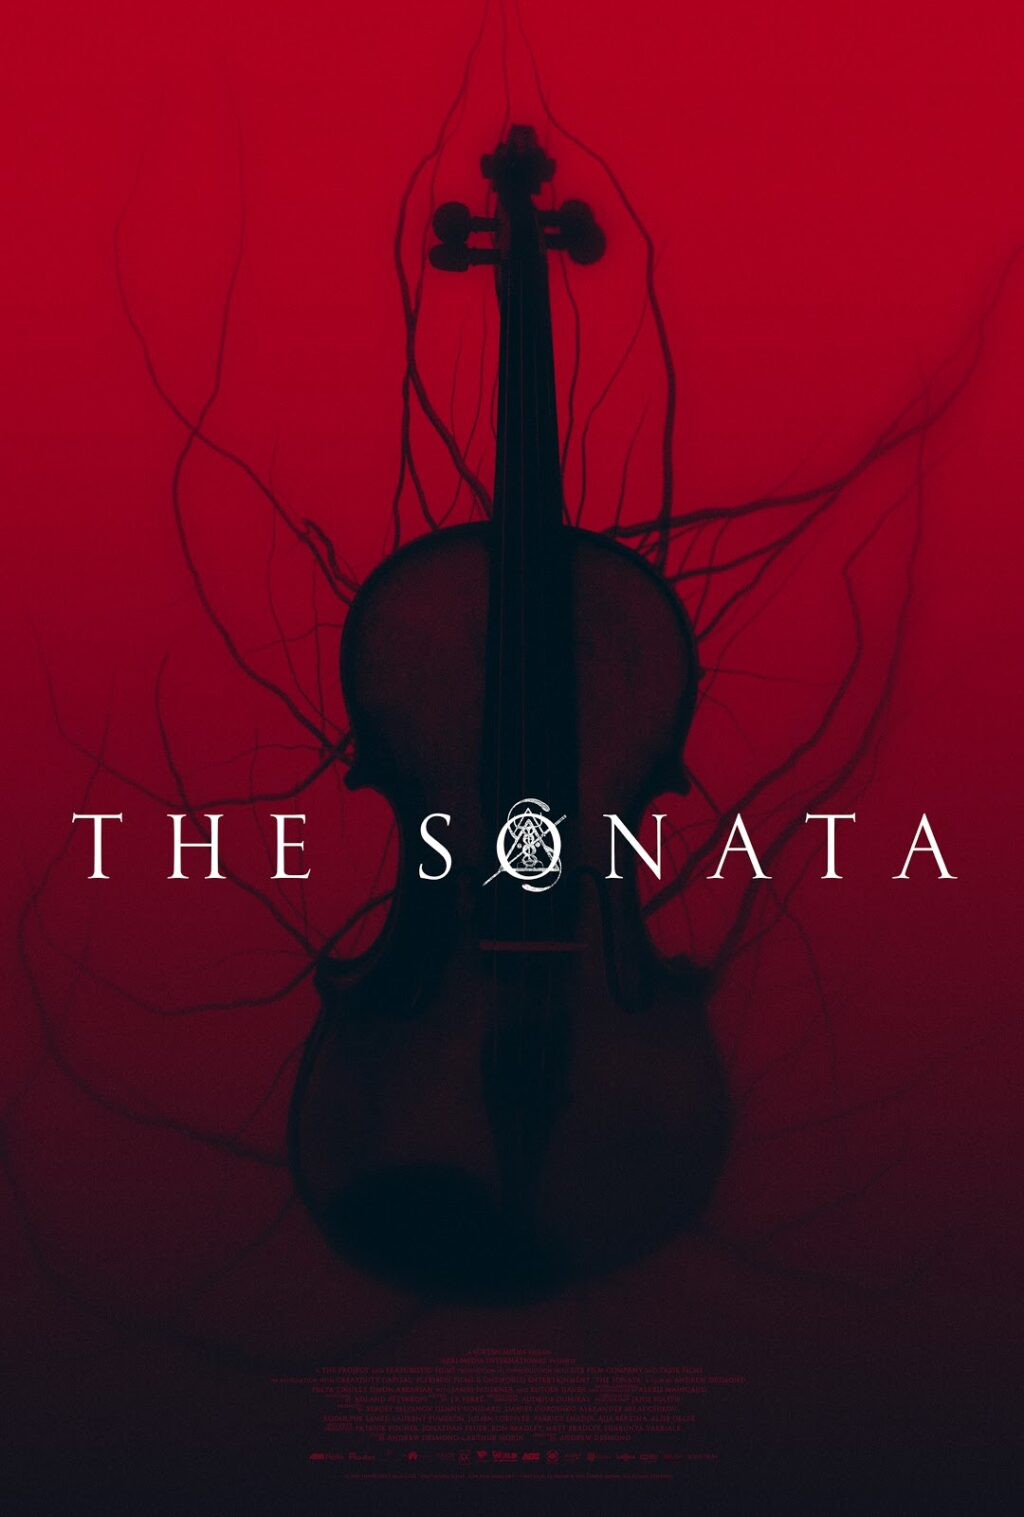 SONATA FINAL 1024x1517 - Check Out Our Exclusive Clip from THE SONATA Now in Select Theaters & VOD